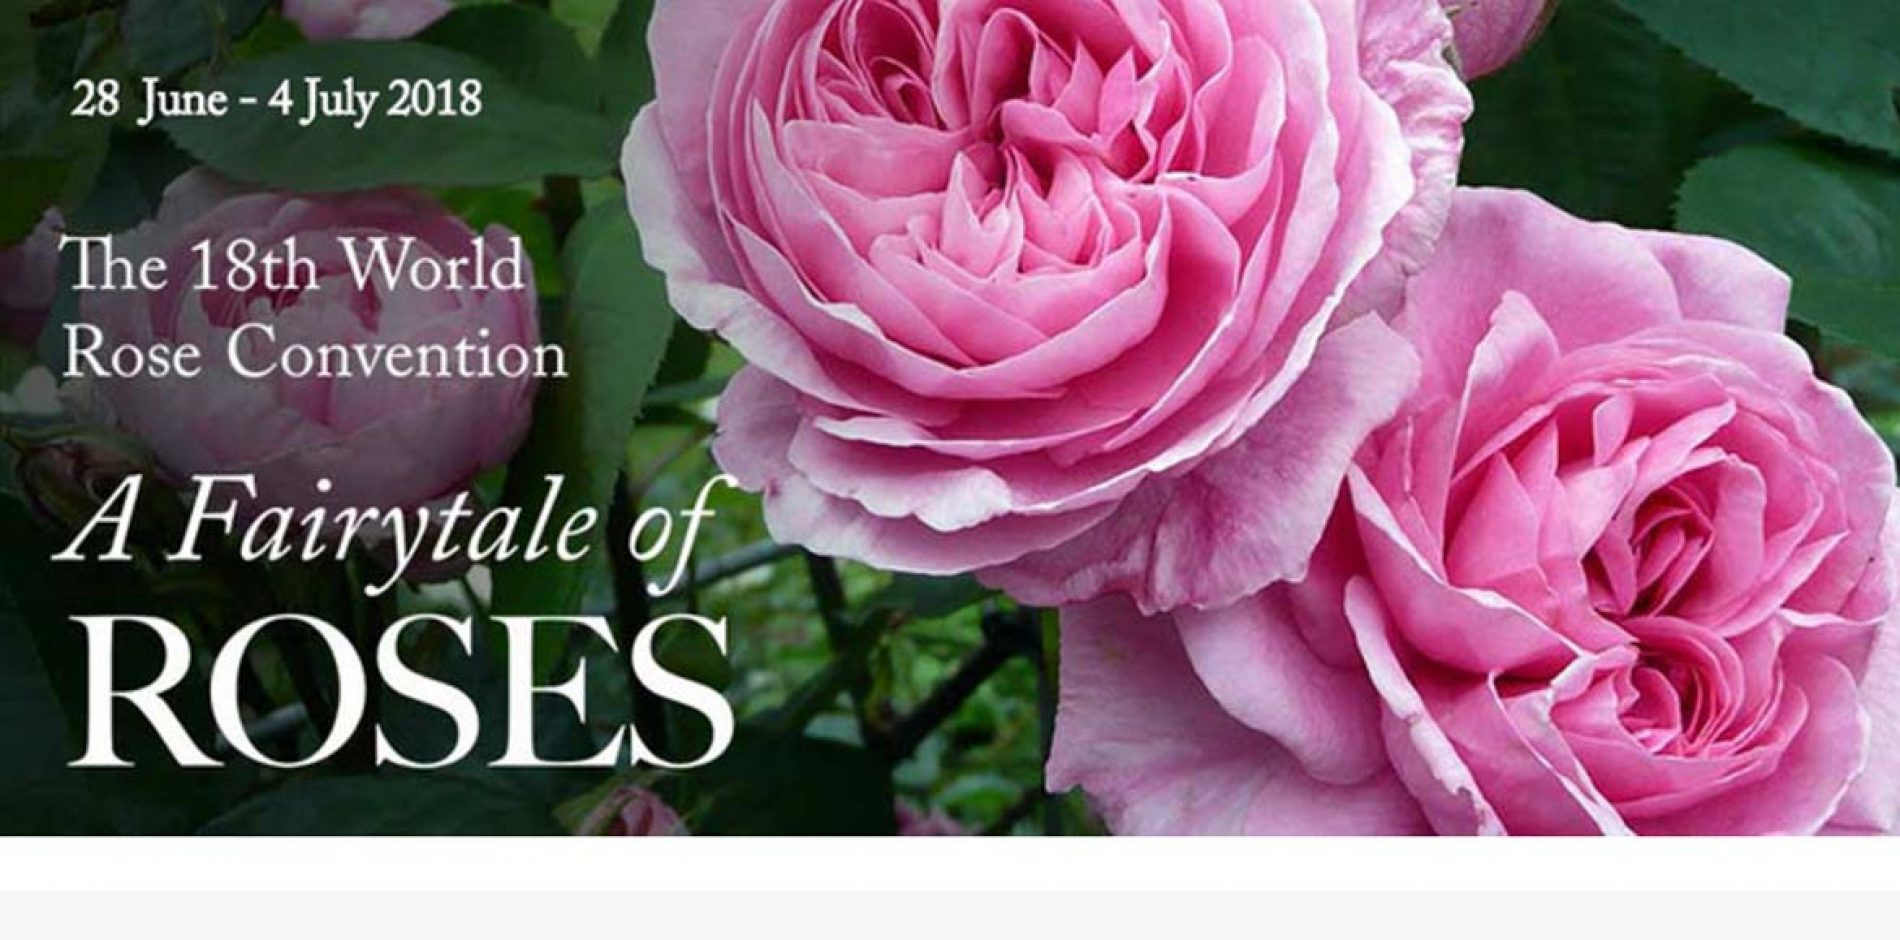 Royal News 18e World Rose Convention